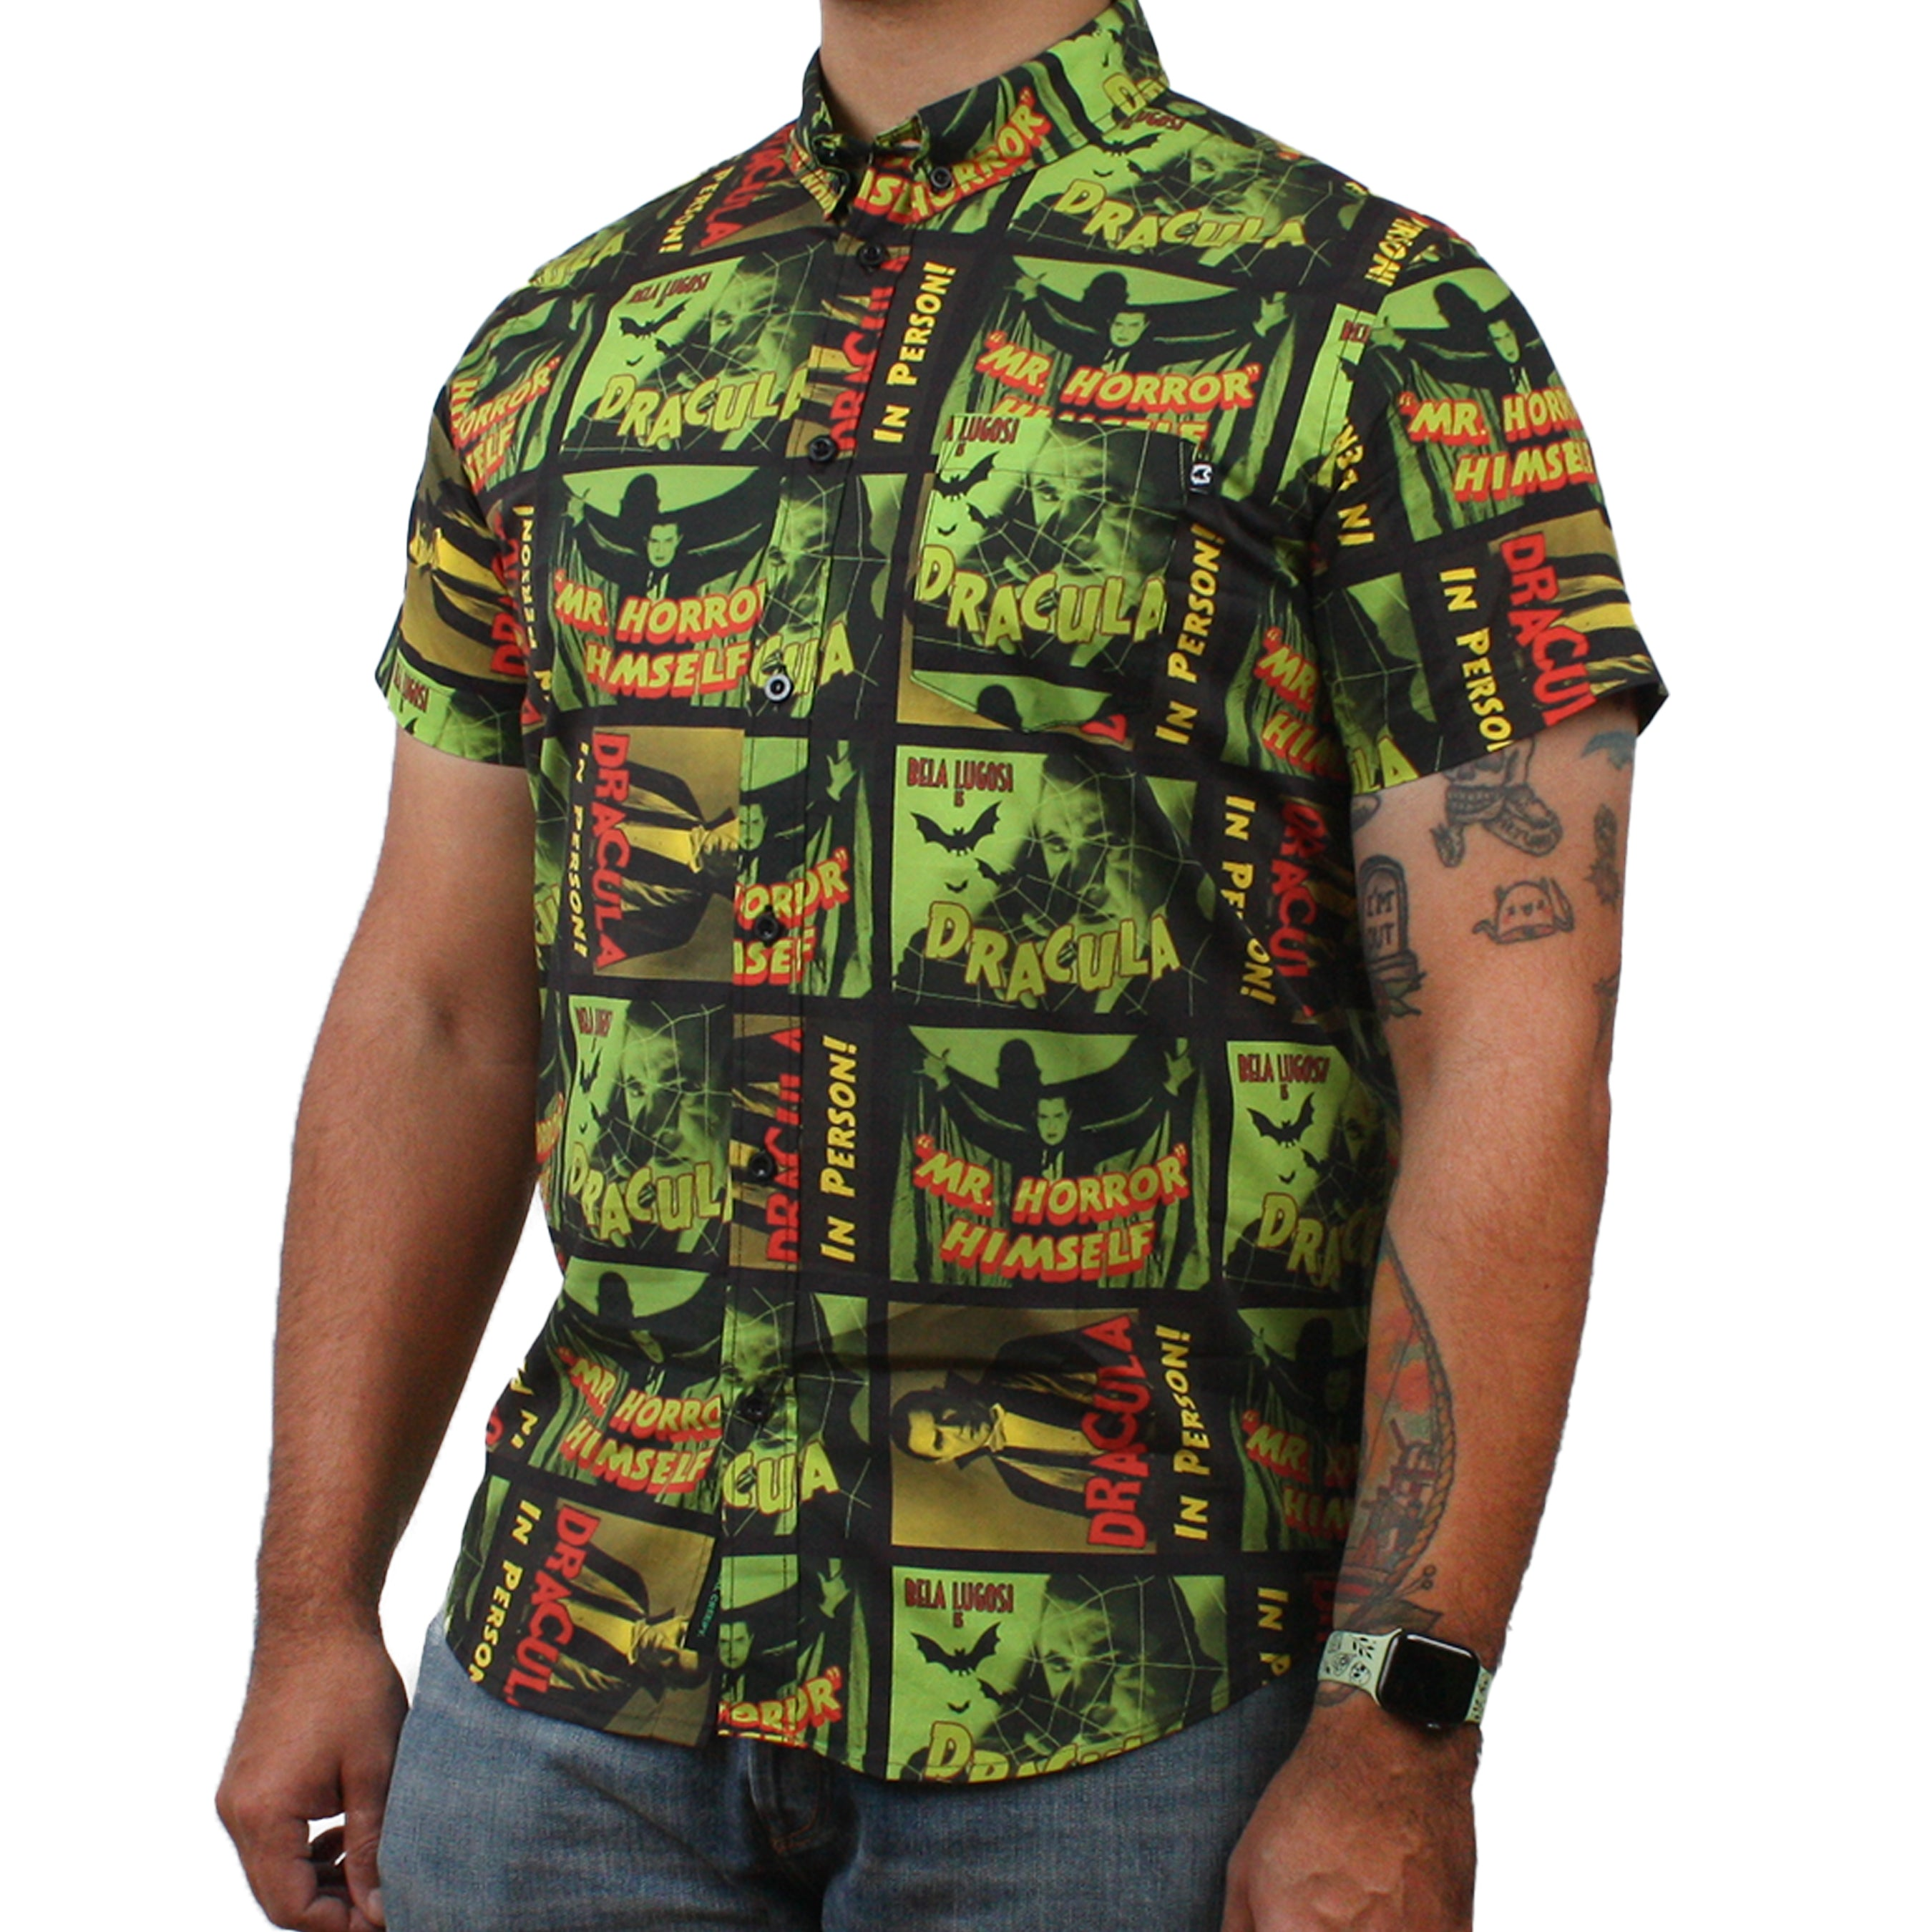 Mr. Horror Button-Up Shirt